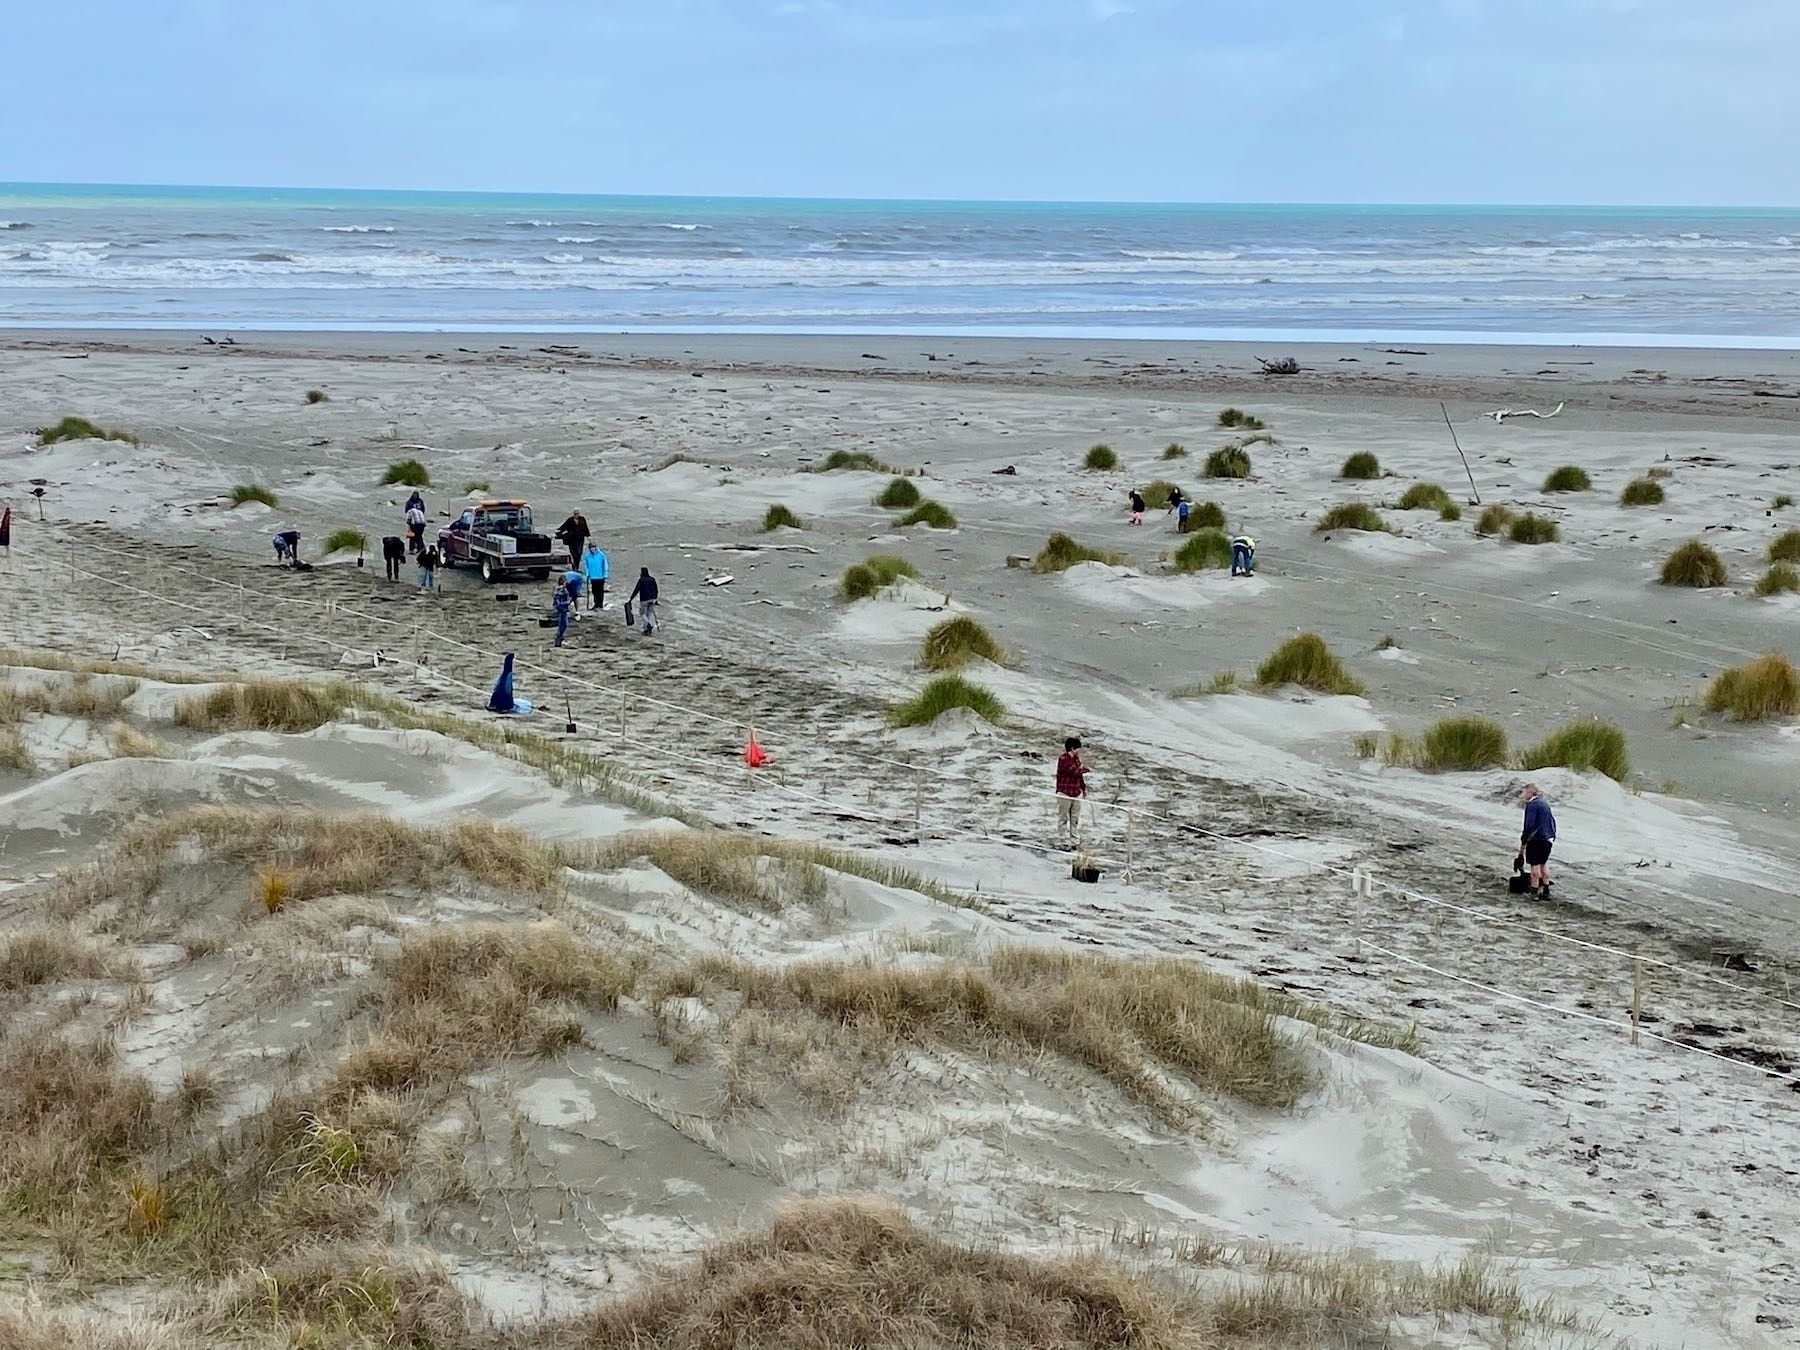 A view of planting from the top of a nearby sand dune.